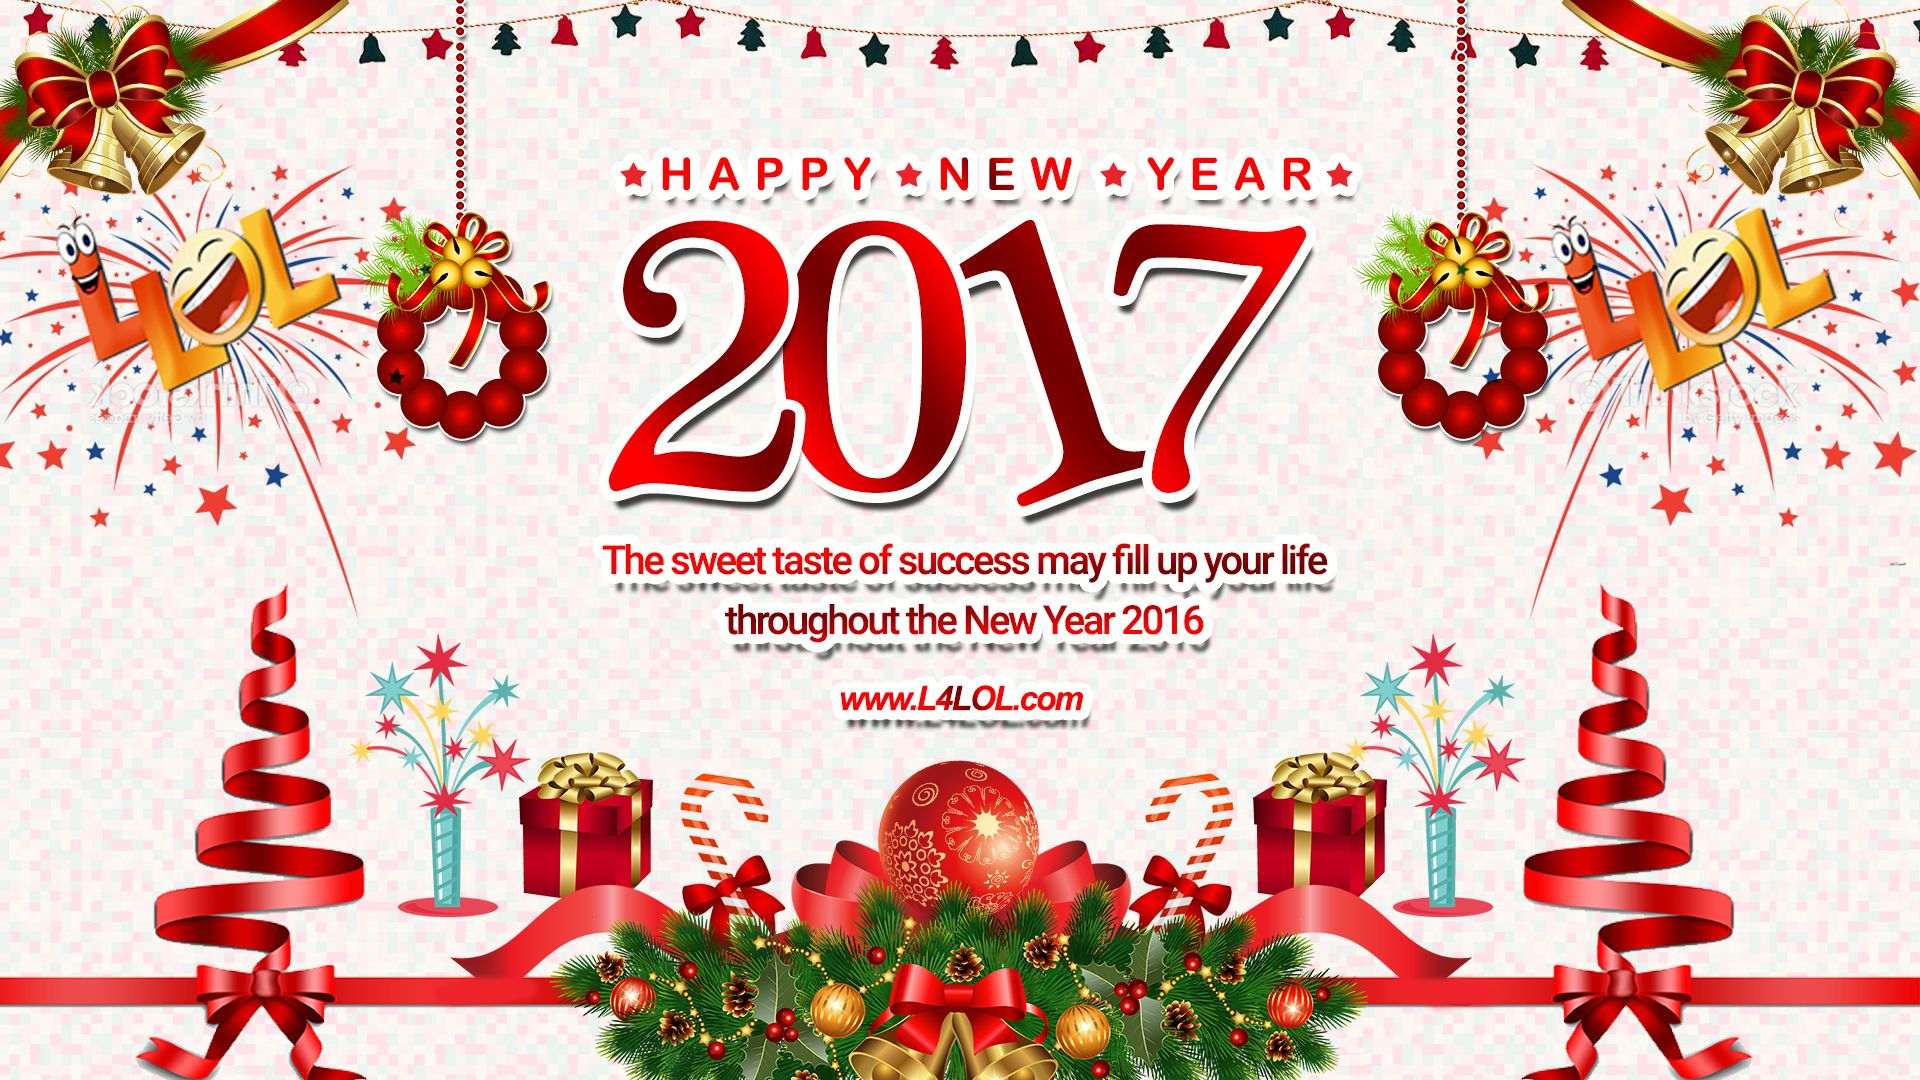 Happynewyear2017 happy new year 2017 photos httpnewyear2017 happynewyear2017 happy new year 2017 photos httpnewyear2017te kristyandbryce Gallery